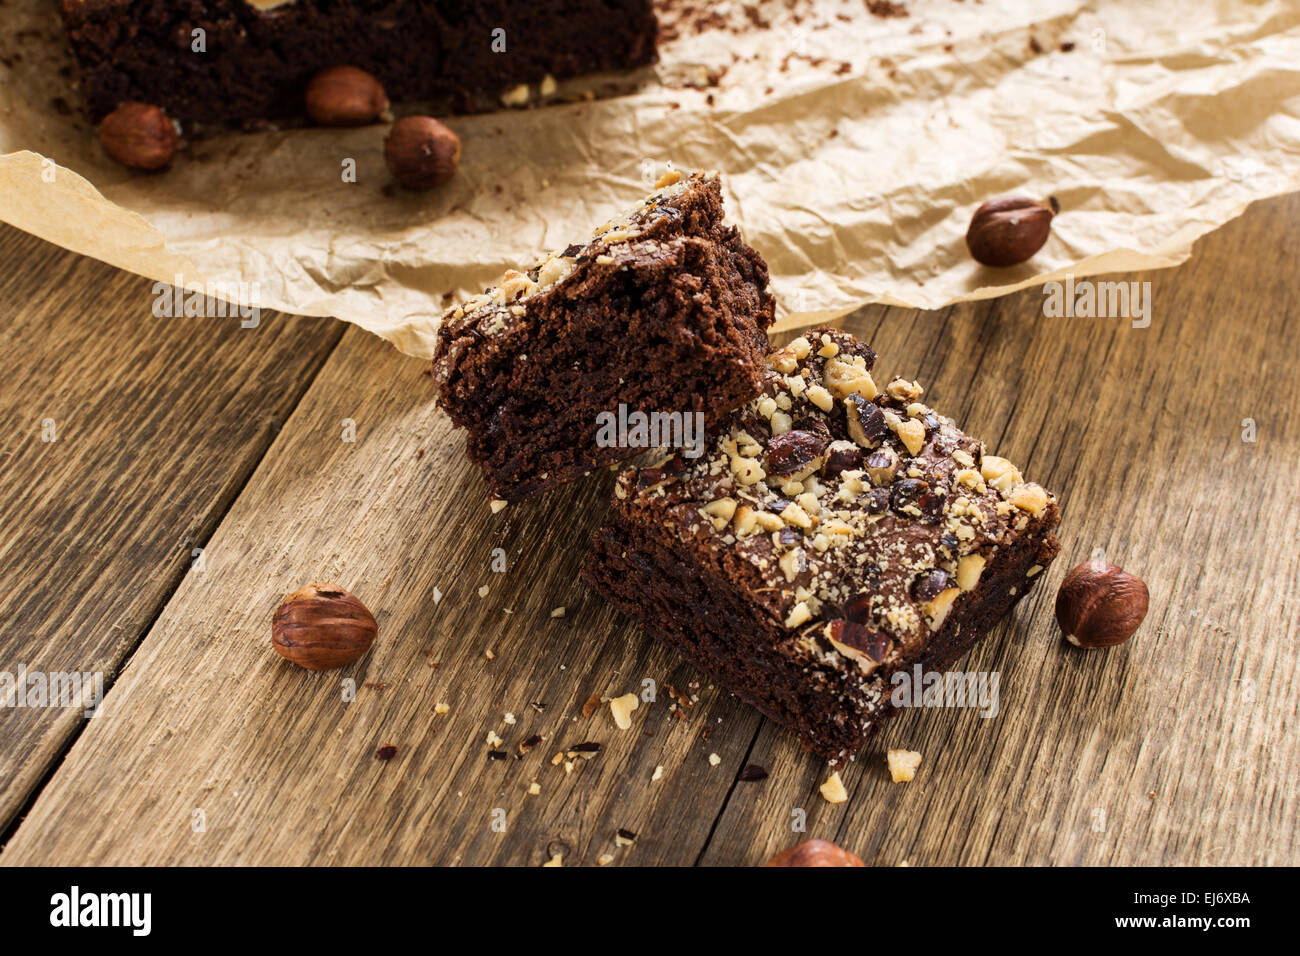 Cocoa and chocolate brownies dessert with hazelnut - Stock Image